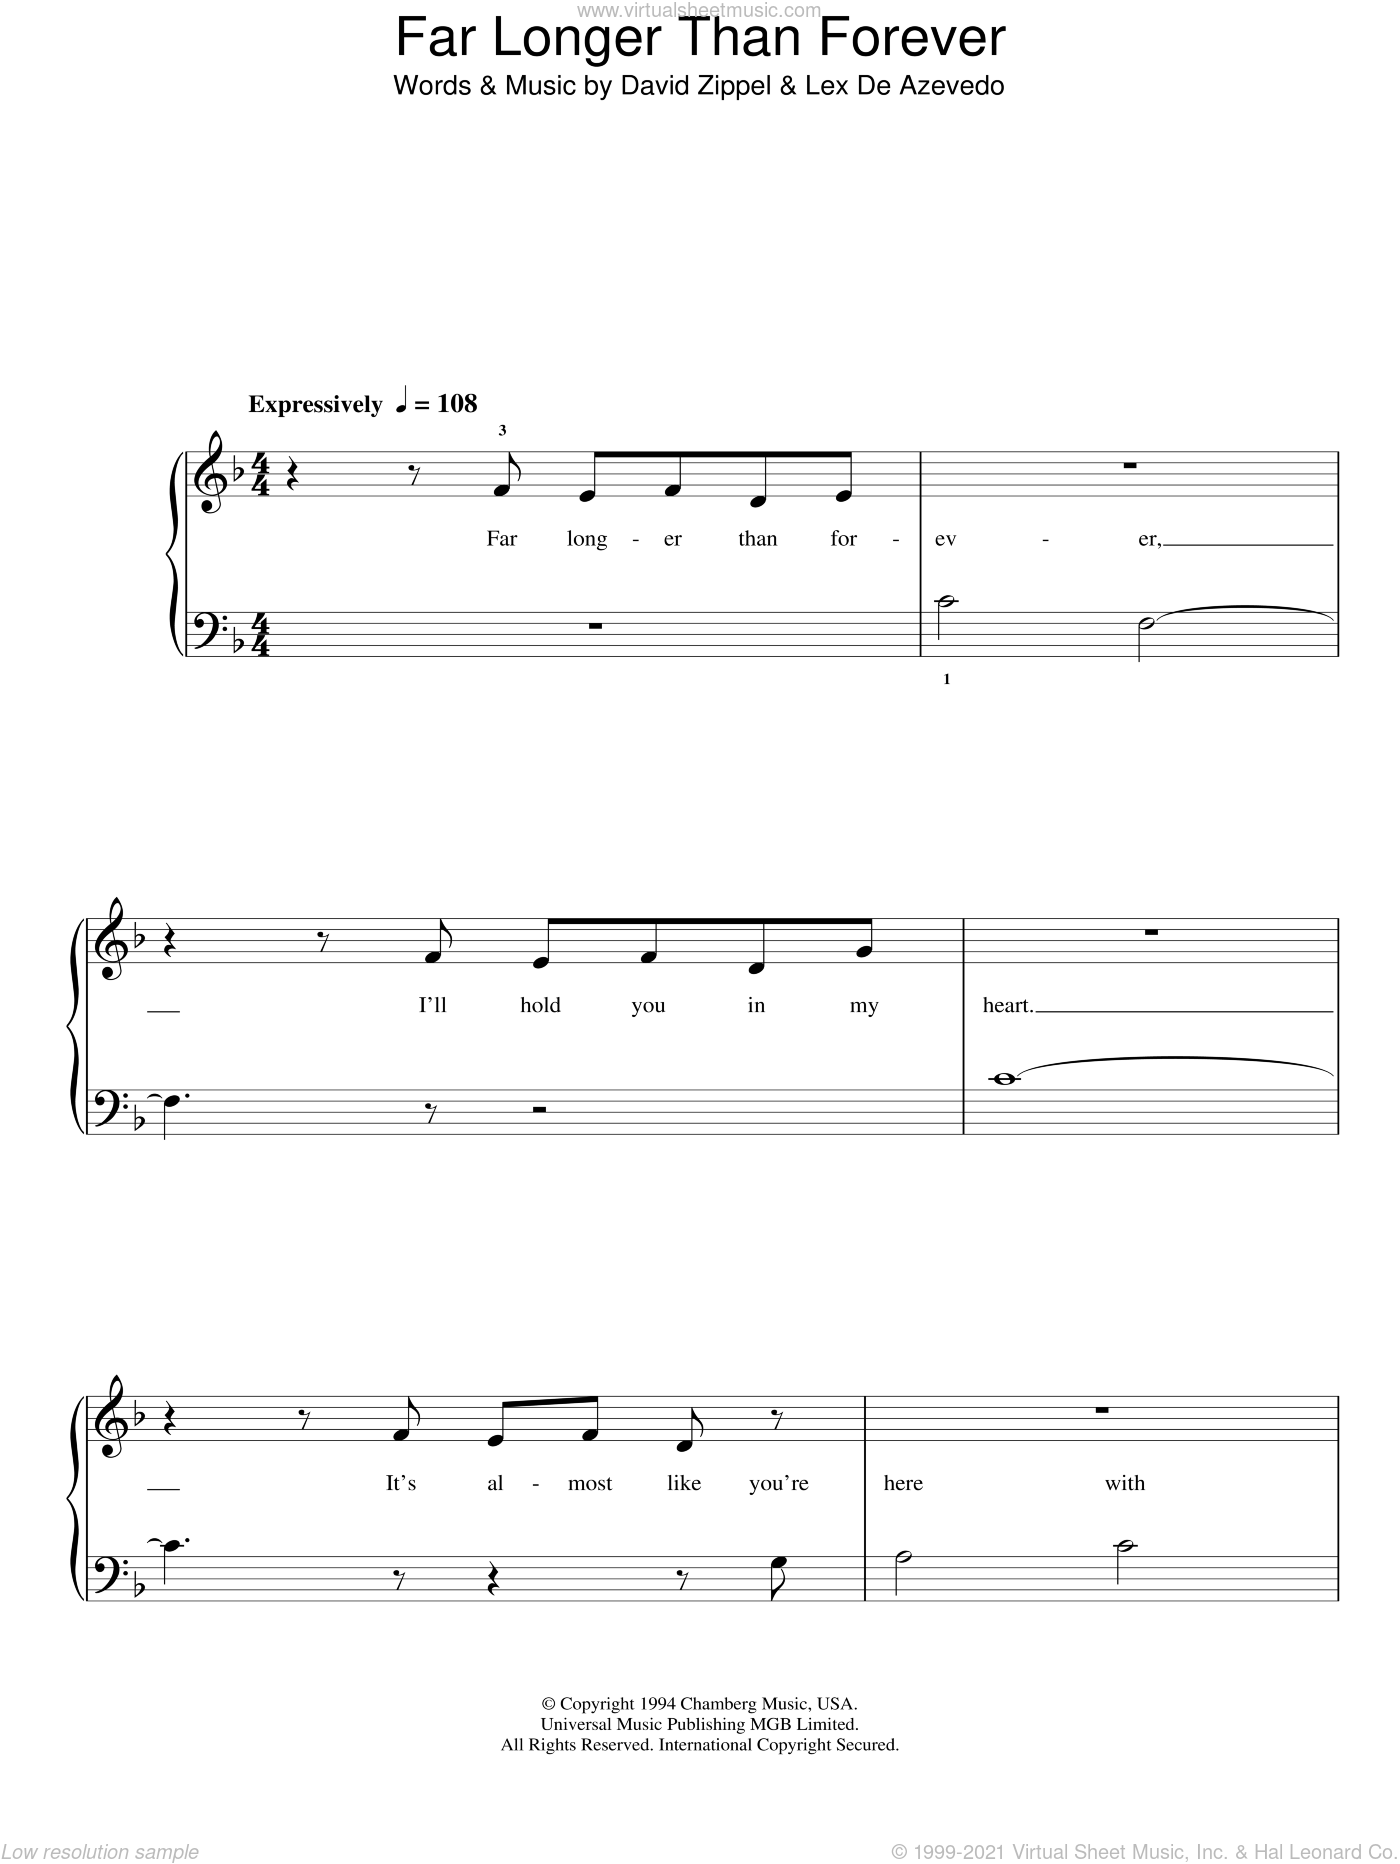 Far Longer Than Forever sheet music for piano solo (chords) by Lex De Azevedo